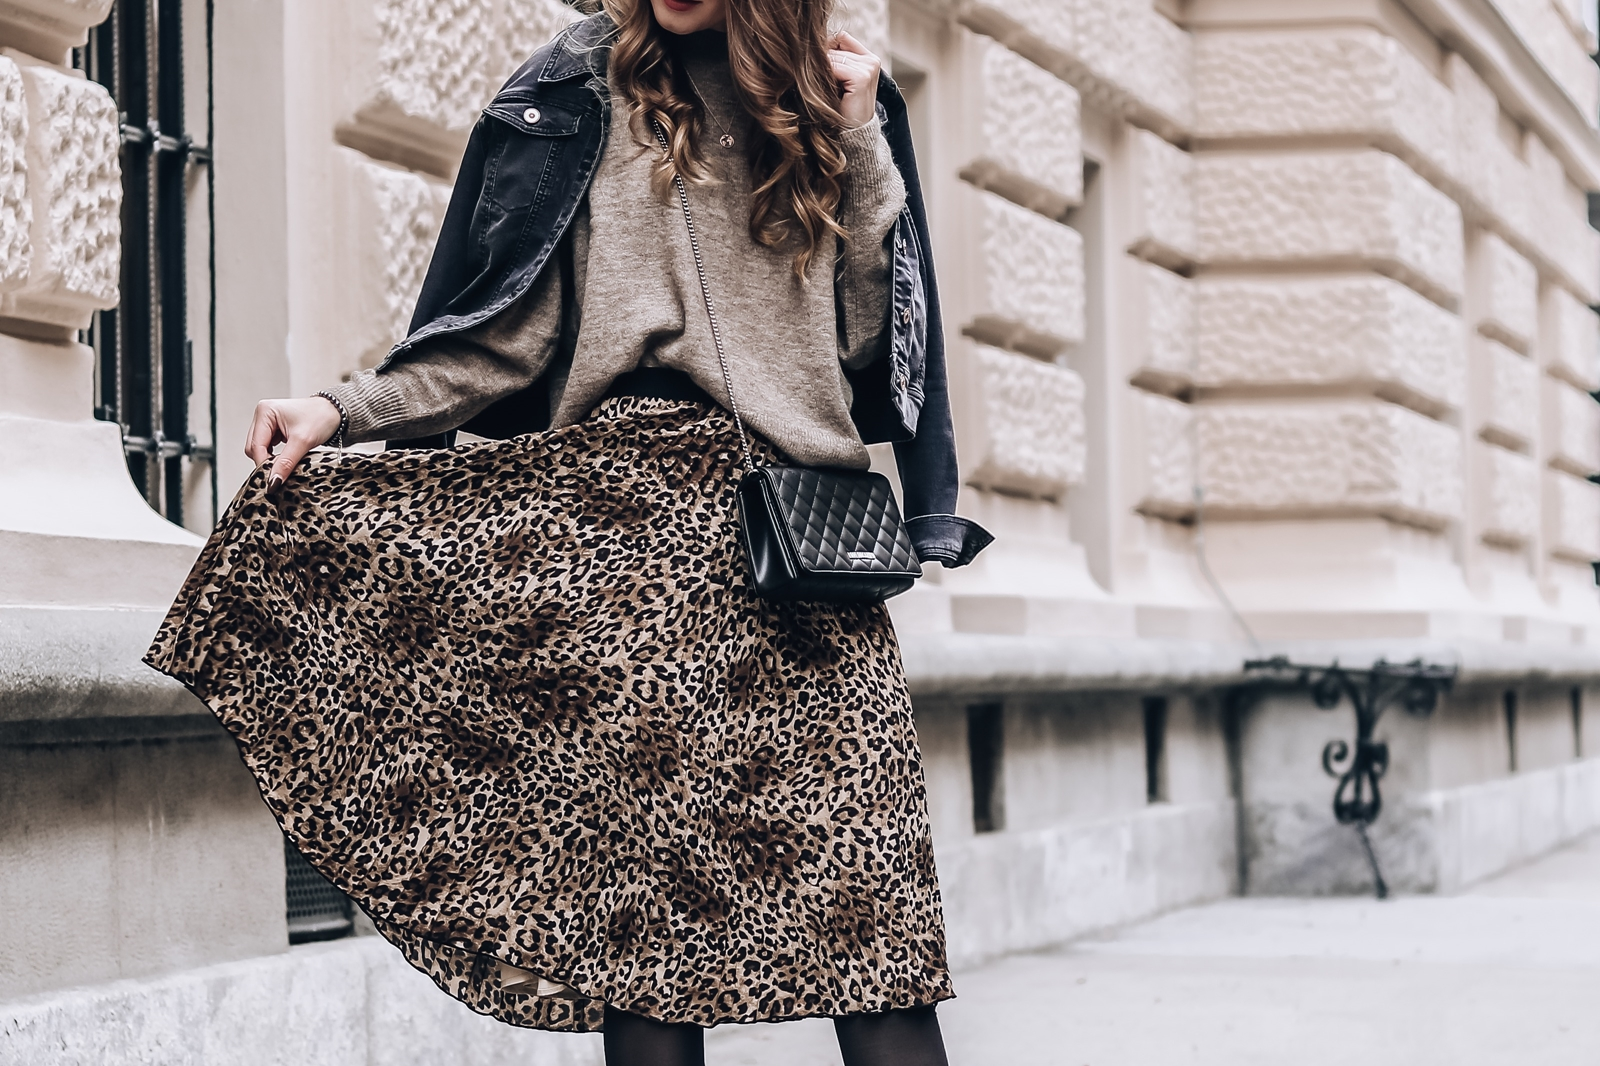 Ideen Mit Fotos 10 Stylische Outfit Ideen Für Den Winter Fashionladyloves